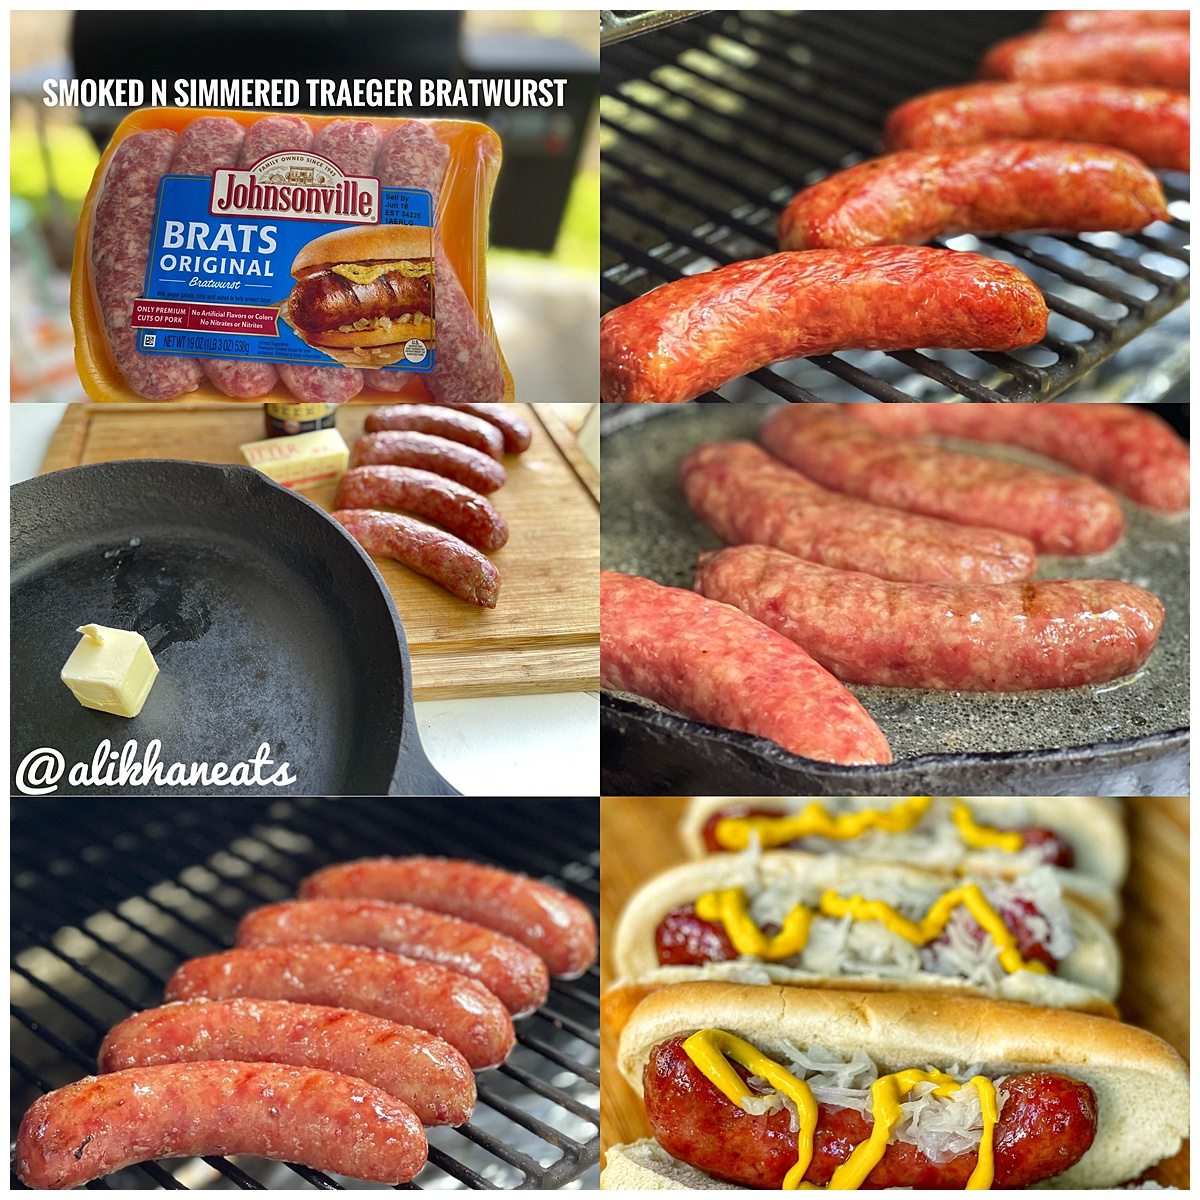 Traeger Smoked 'n Simmered Beer Brats montage